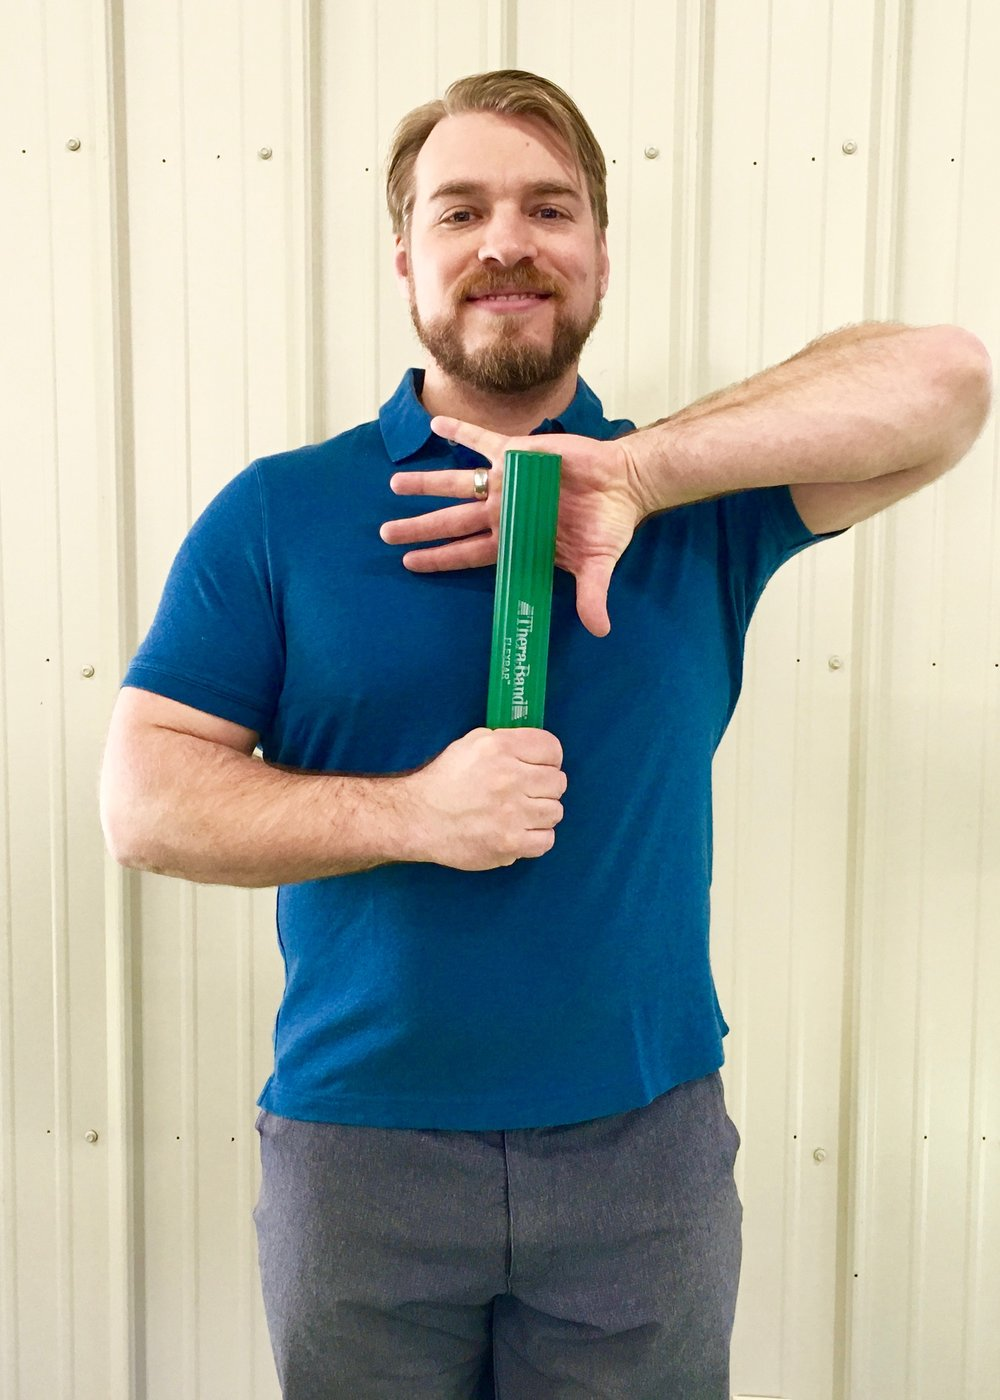 Tennis Elbow Exercise 2 - Lift uninjured elbow high while grabbing bar, palm facing away.